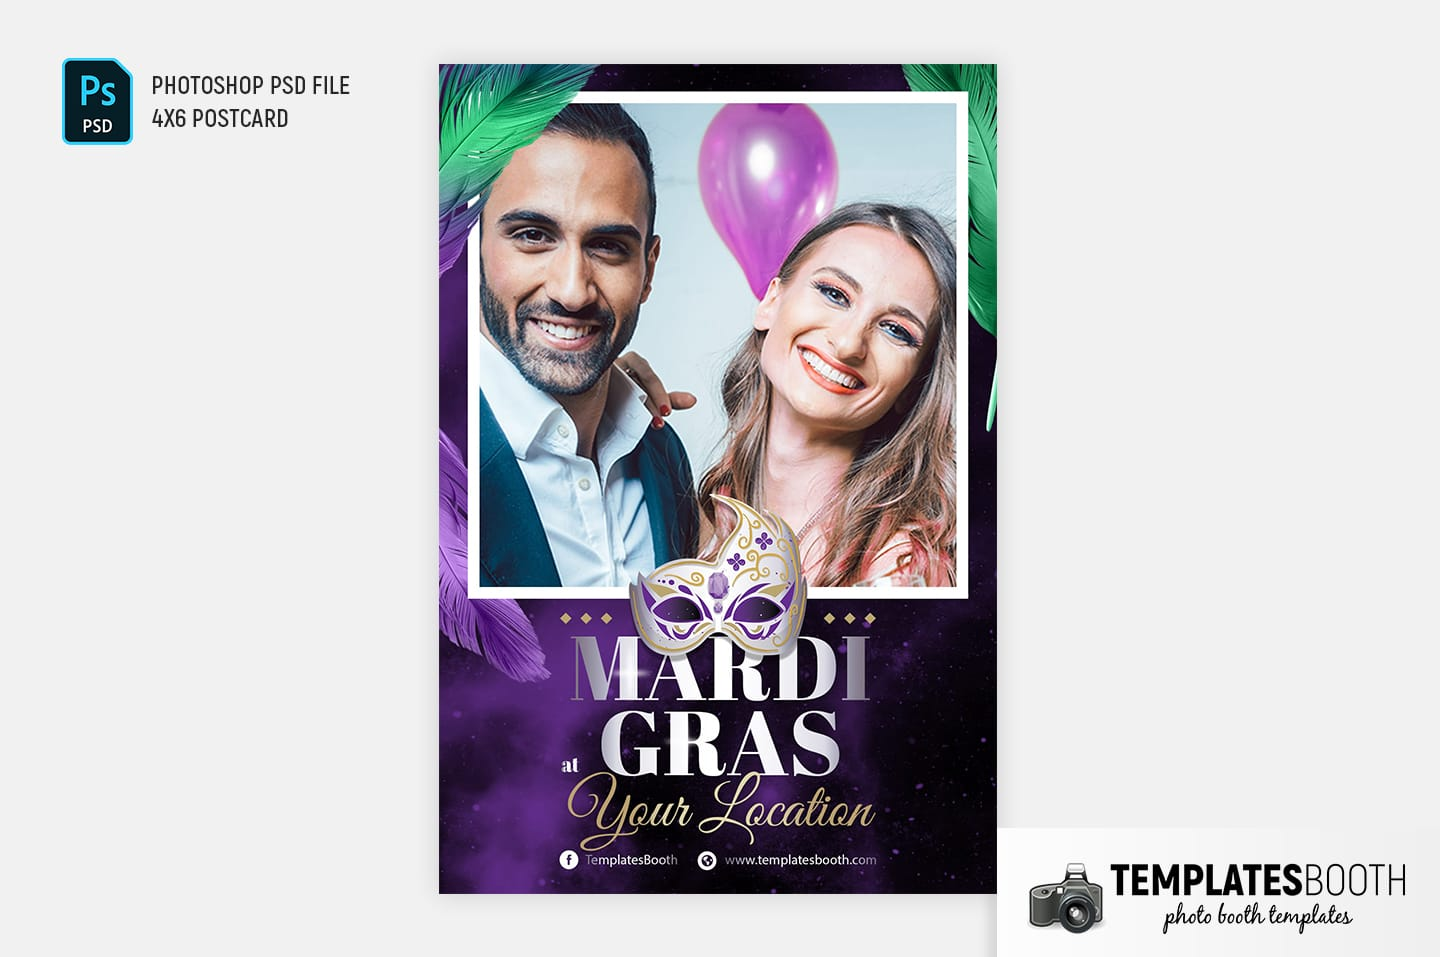 Mardi Gras Photo Booth Template (4x6 postcard)